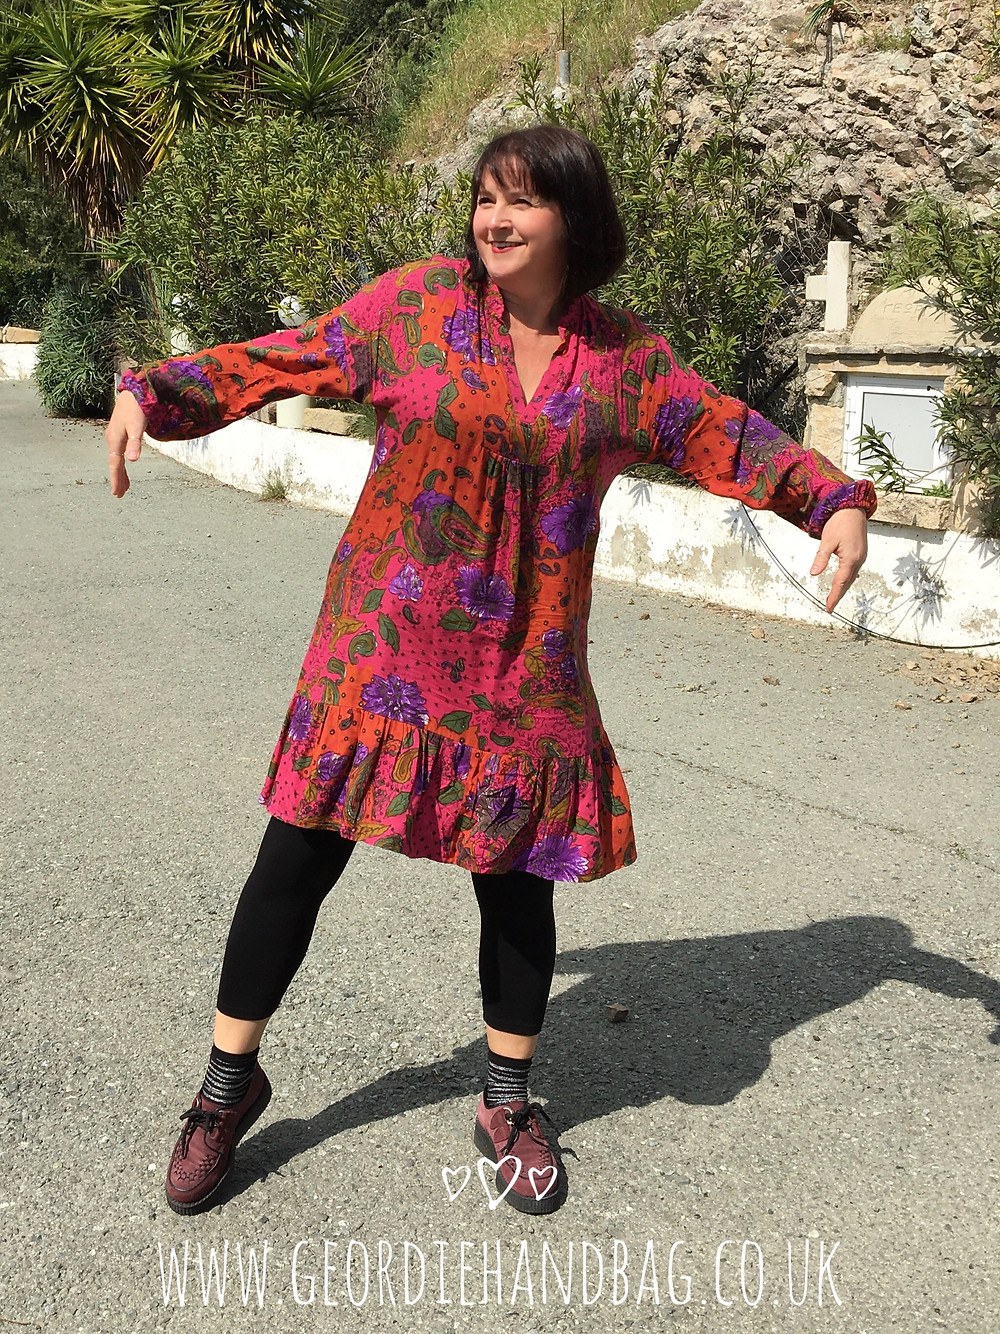 A Review of the Aurora Tunic Dress by Wardrobe by Me